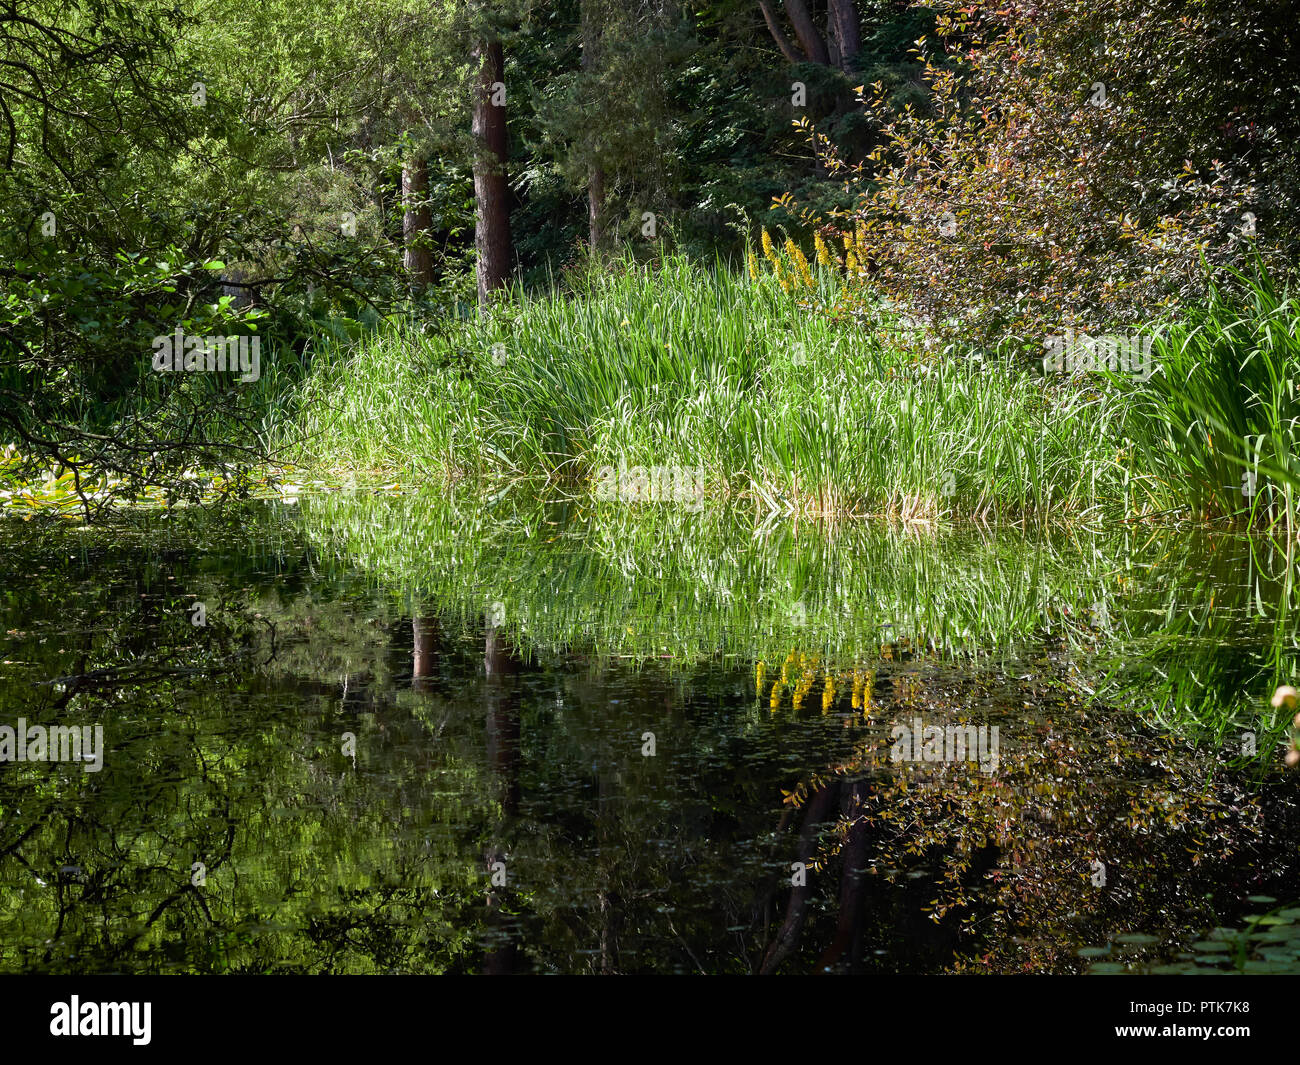 Looking across the peaceful Reflections in the water of a Pond at the St Andrews Botanic Gardens in Fife, Scotland. - Stock Image